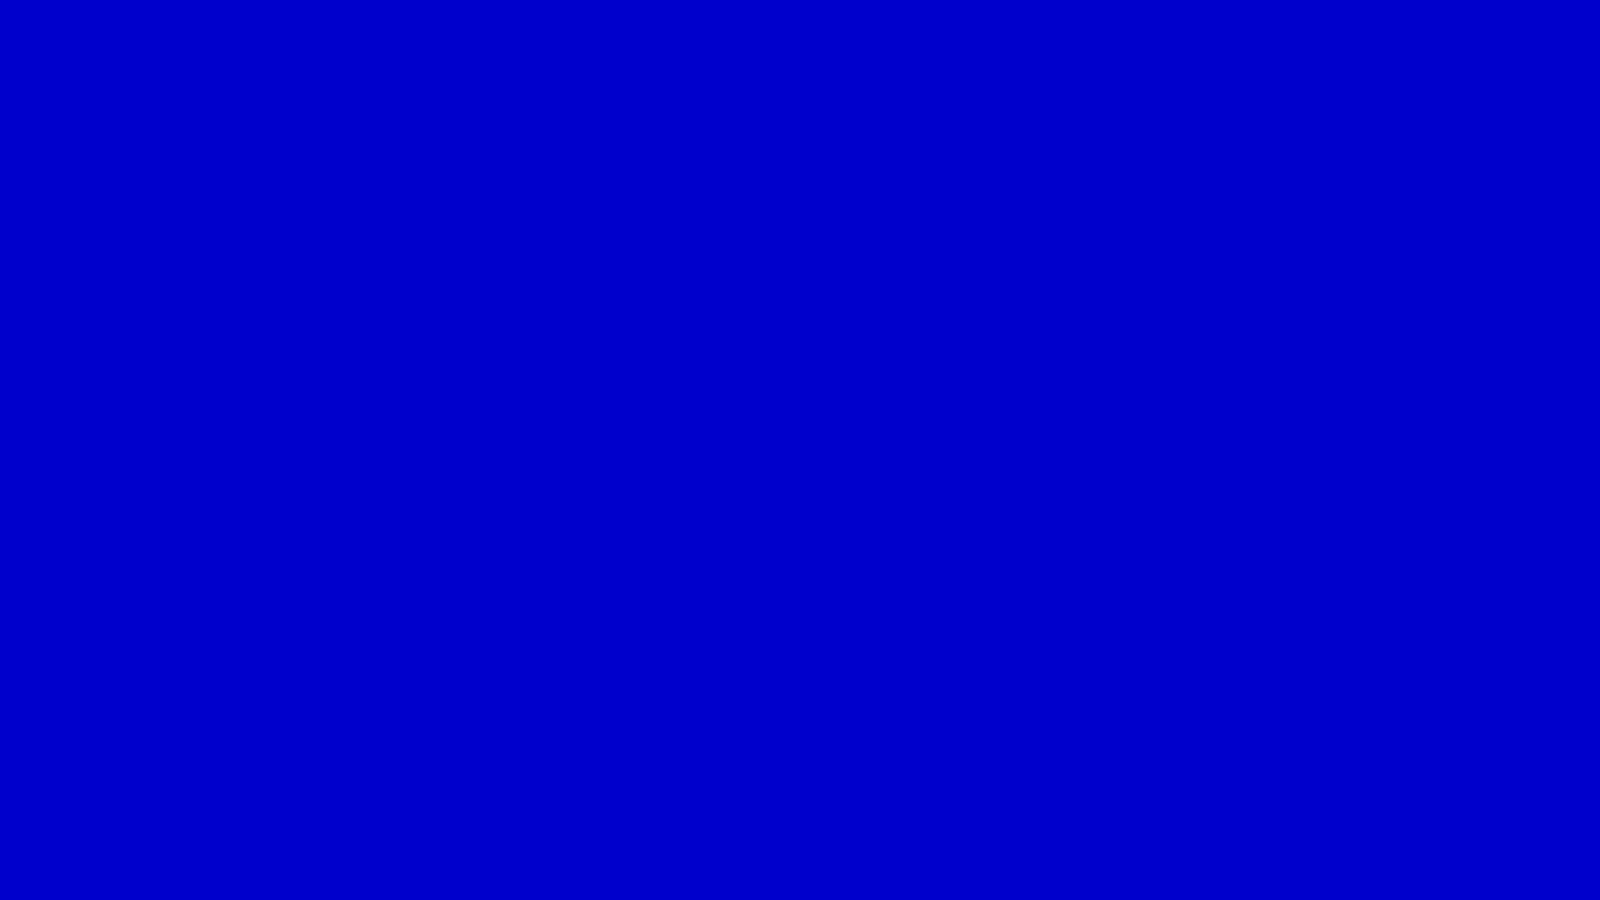 1600x900 Medium Blue Solid Color Background